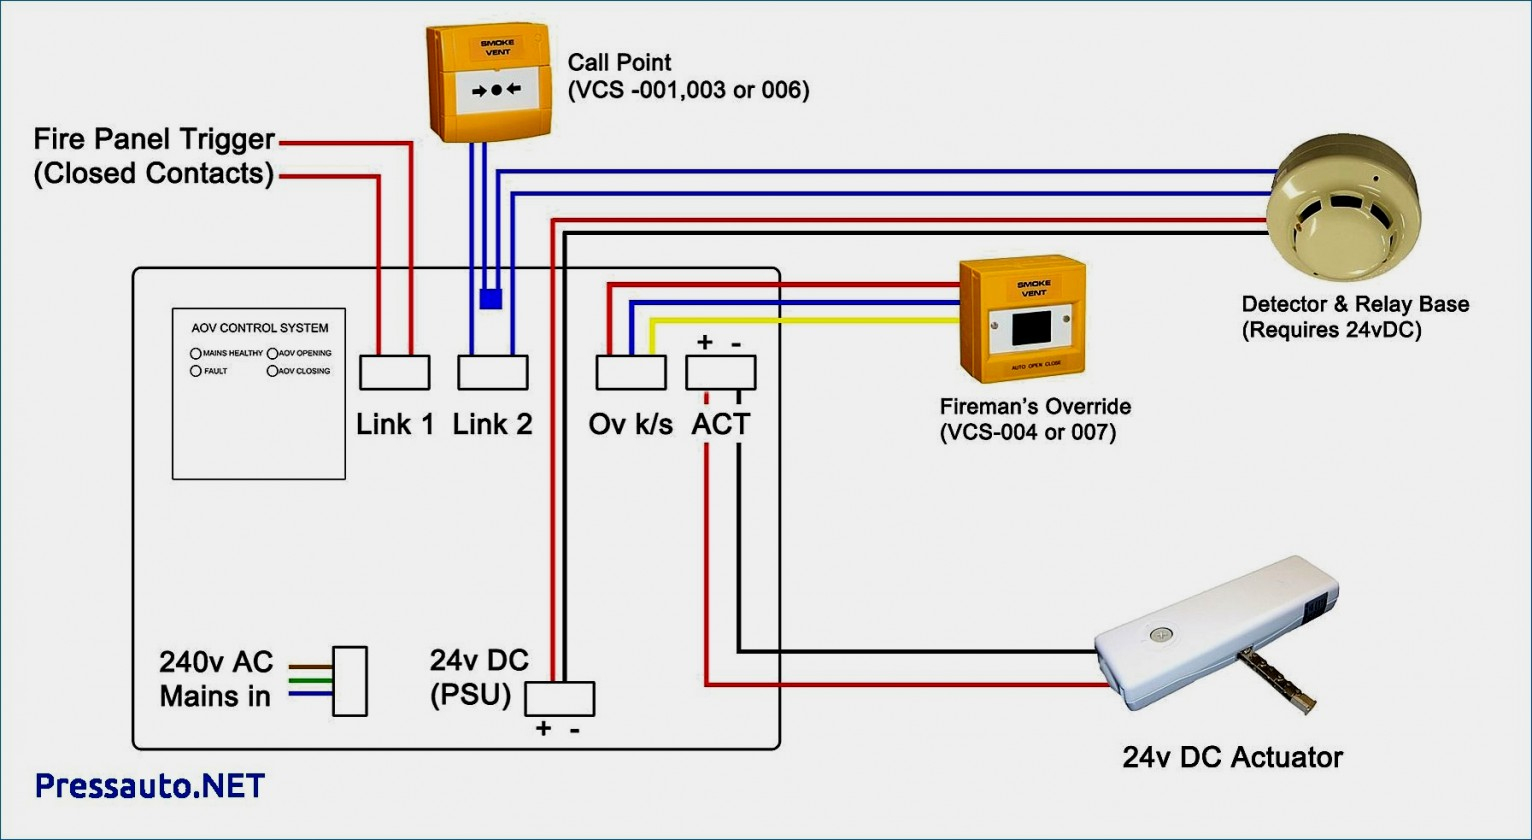 Wiring Diagram For Smoke Detectors Hard Wired - Wiring Diagrams Base - 2 Wire Smoke Detector Wiring Diagram